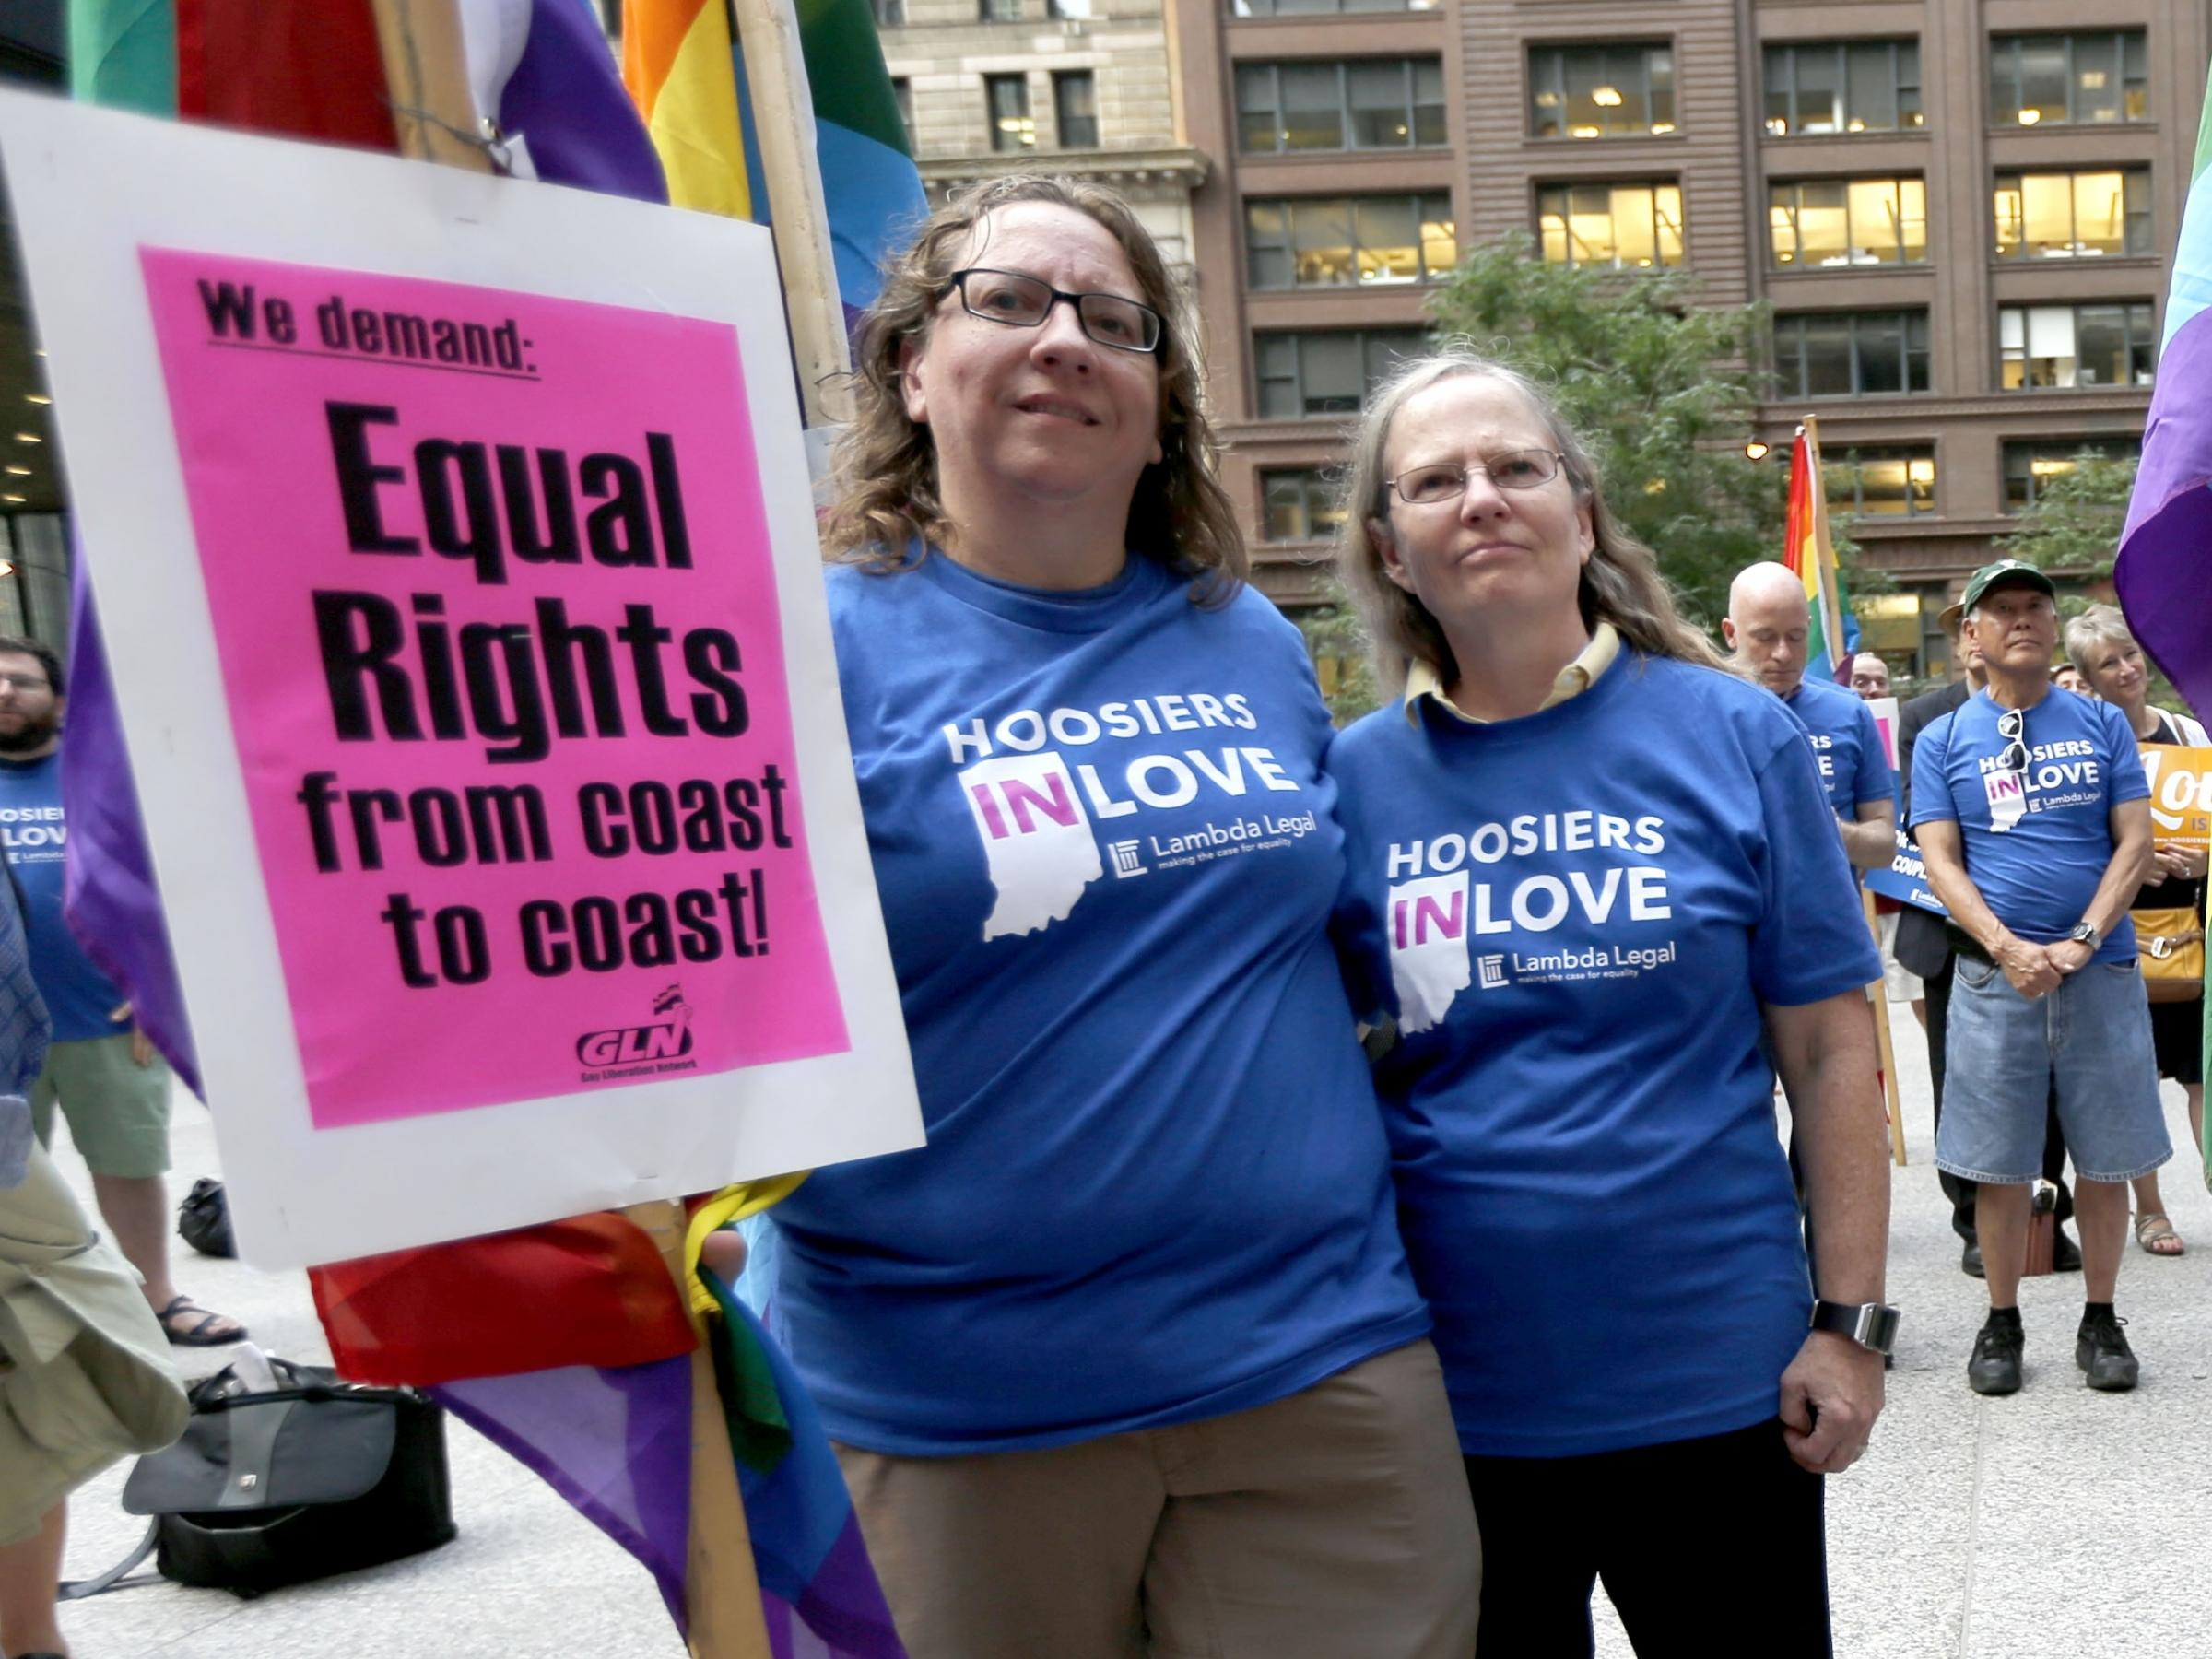 federalism and gay marriage The ongoing battle to legalize gay marriage in the states illustrates the pros and  cons of the united states federal system federalism describes.